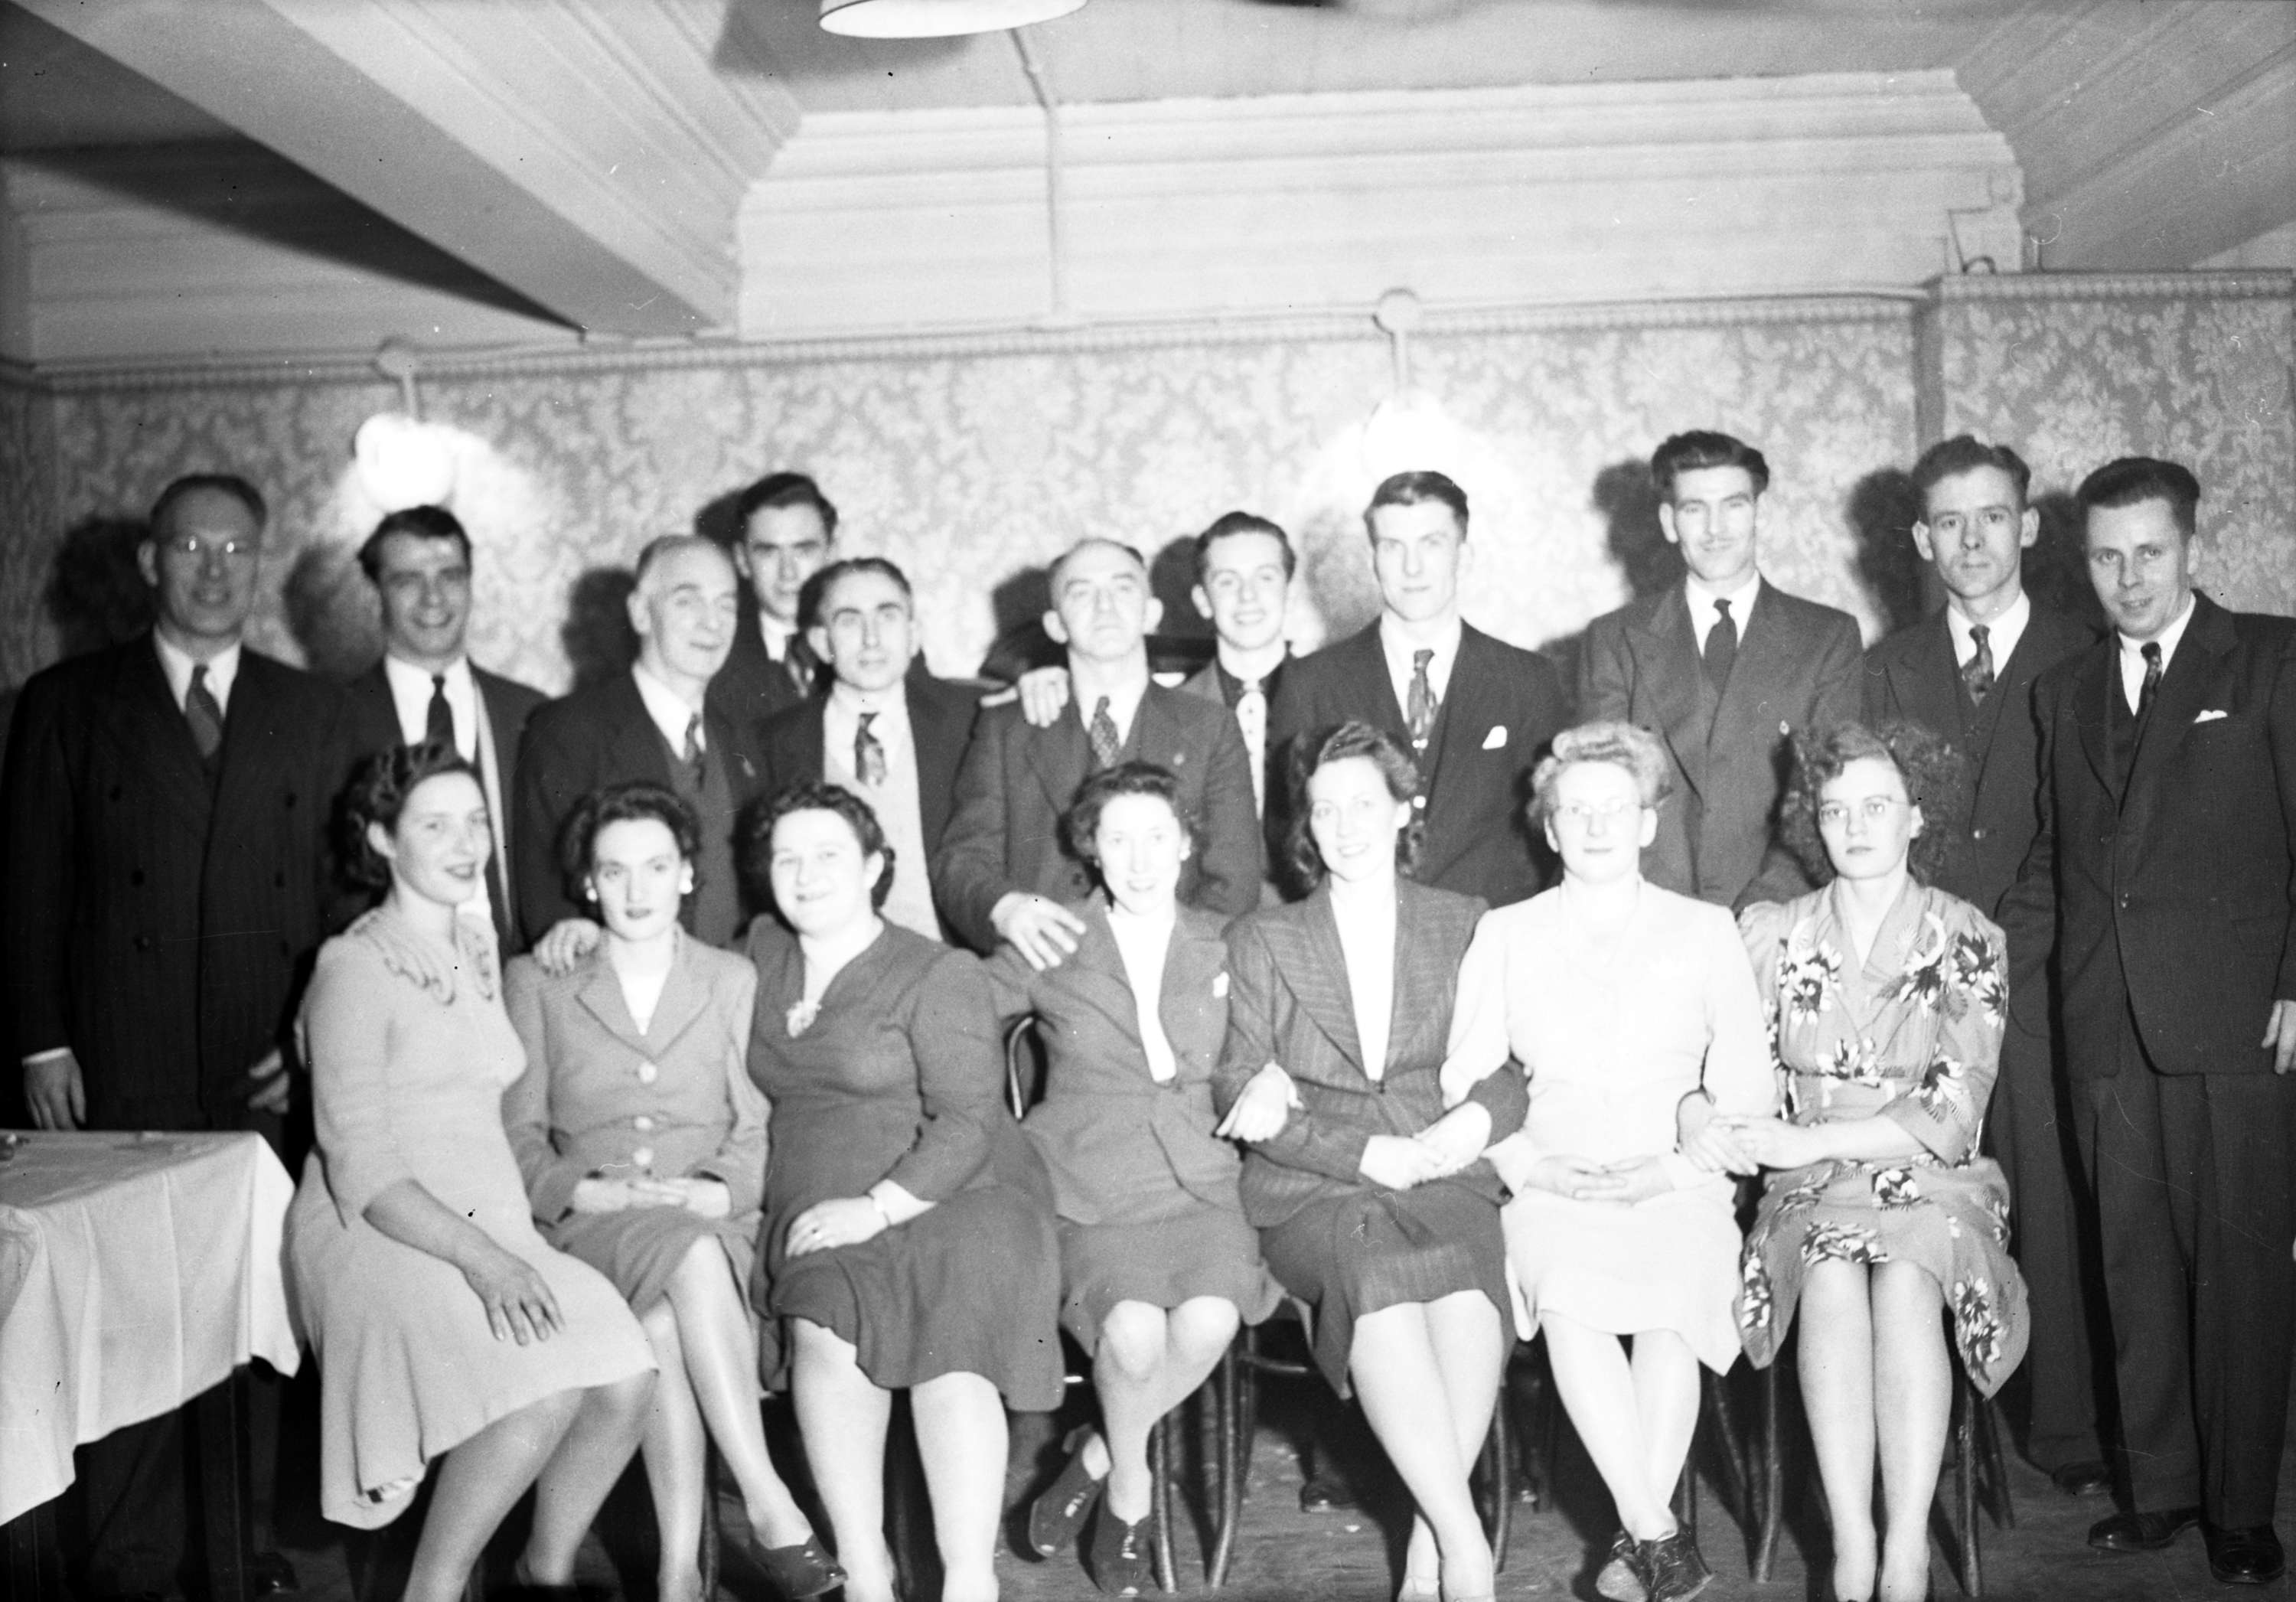 Group Of Men In Suits And Women In Dresses City Of Vancouver Archives